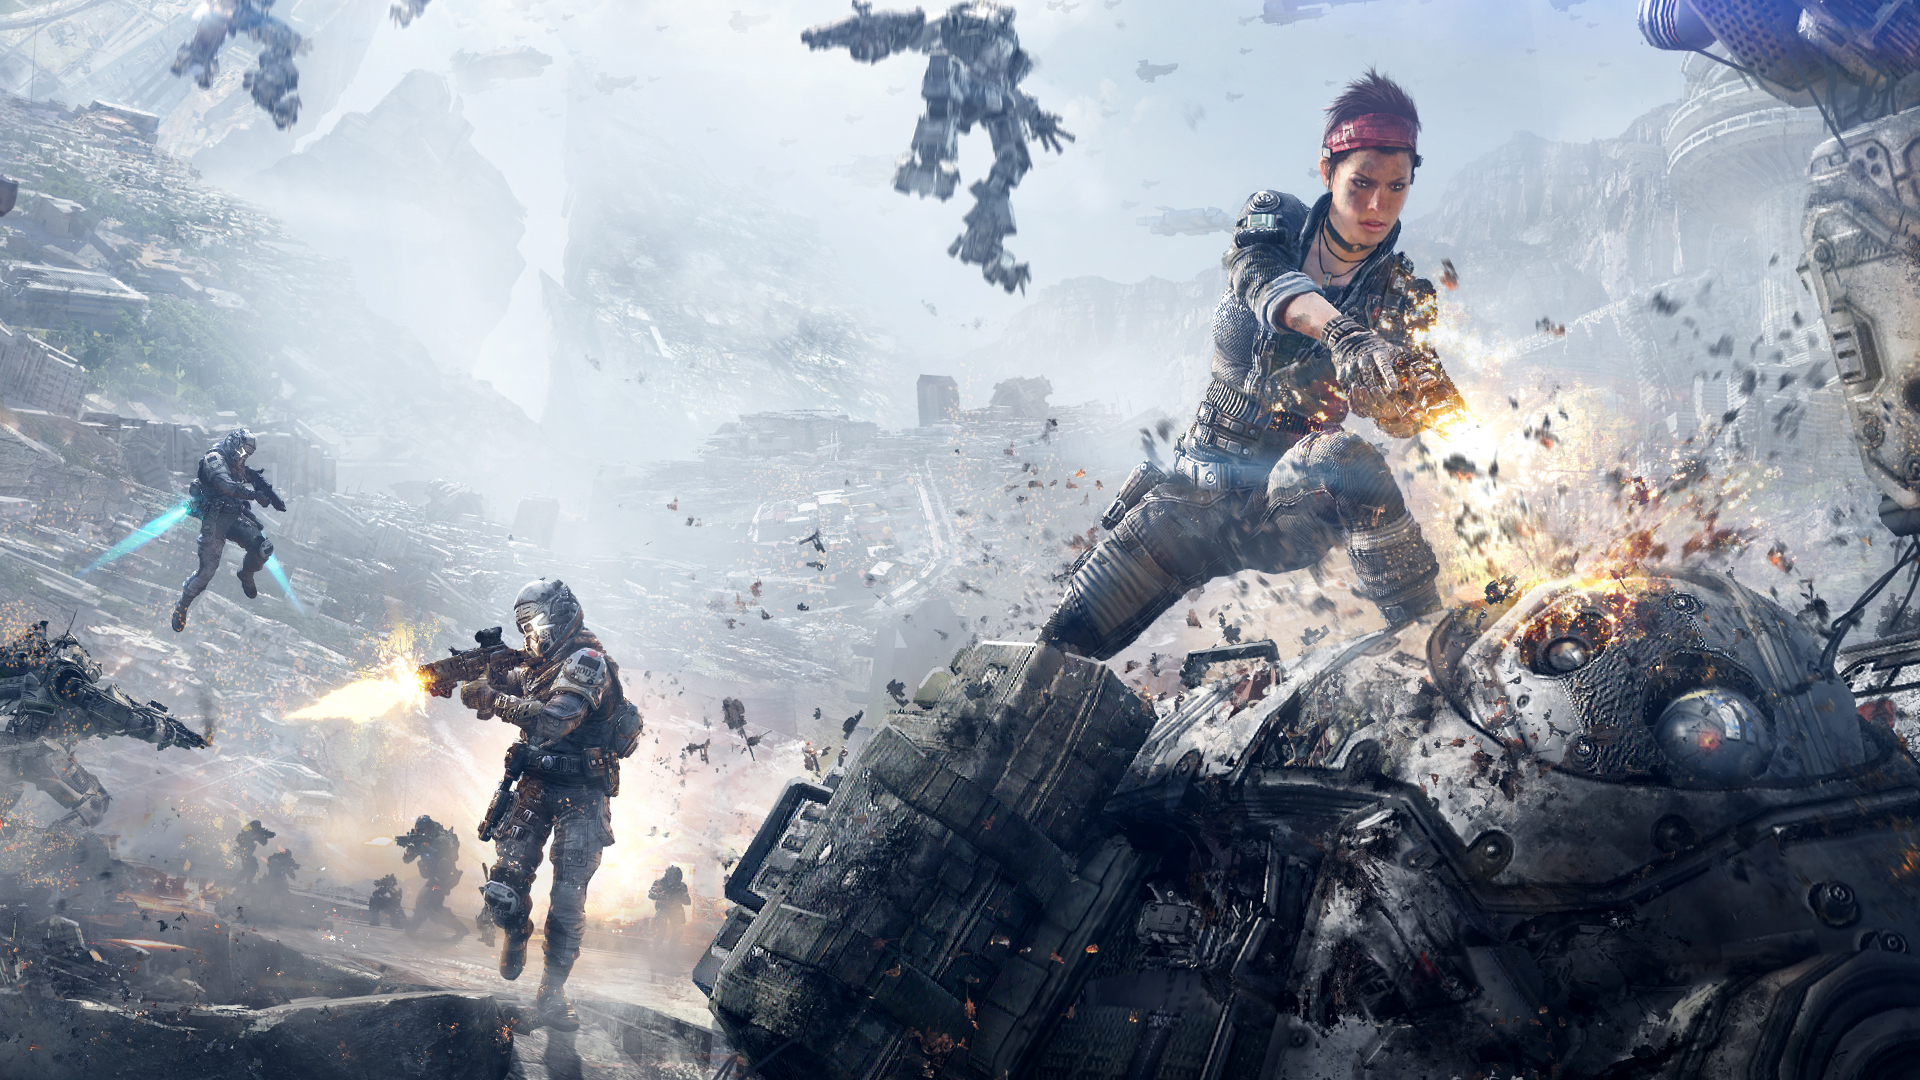 free download hd wallpapers of titanfall game beautiful desktop background images widescreen